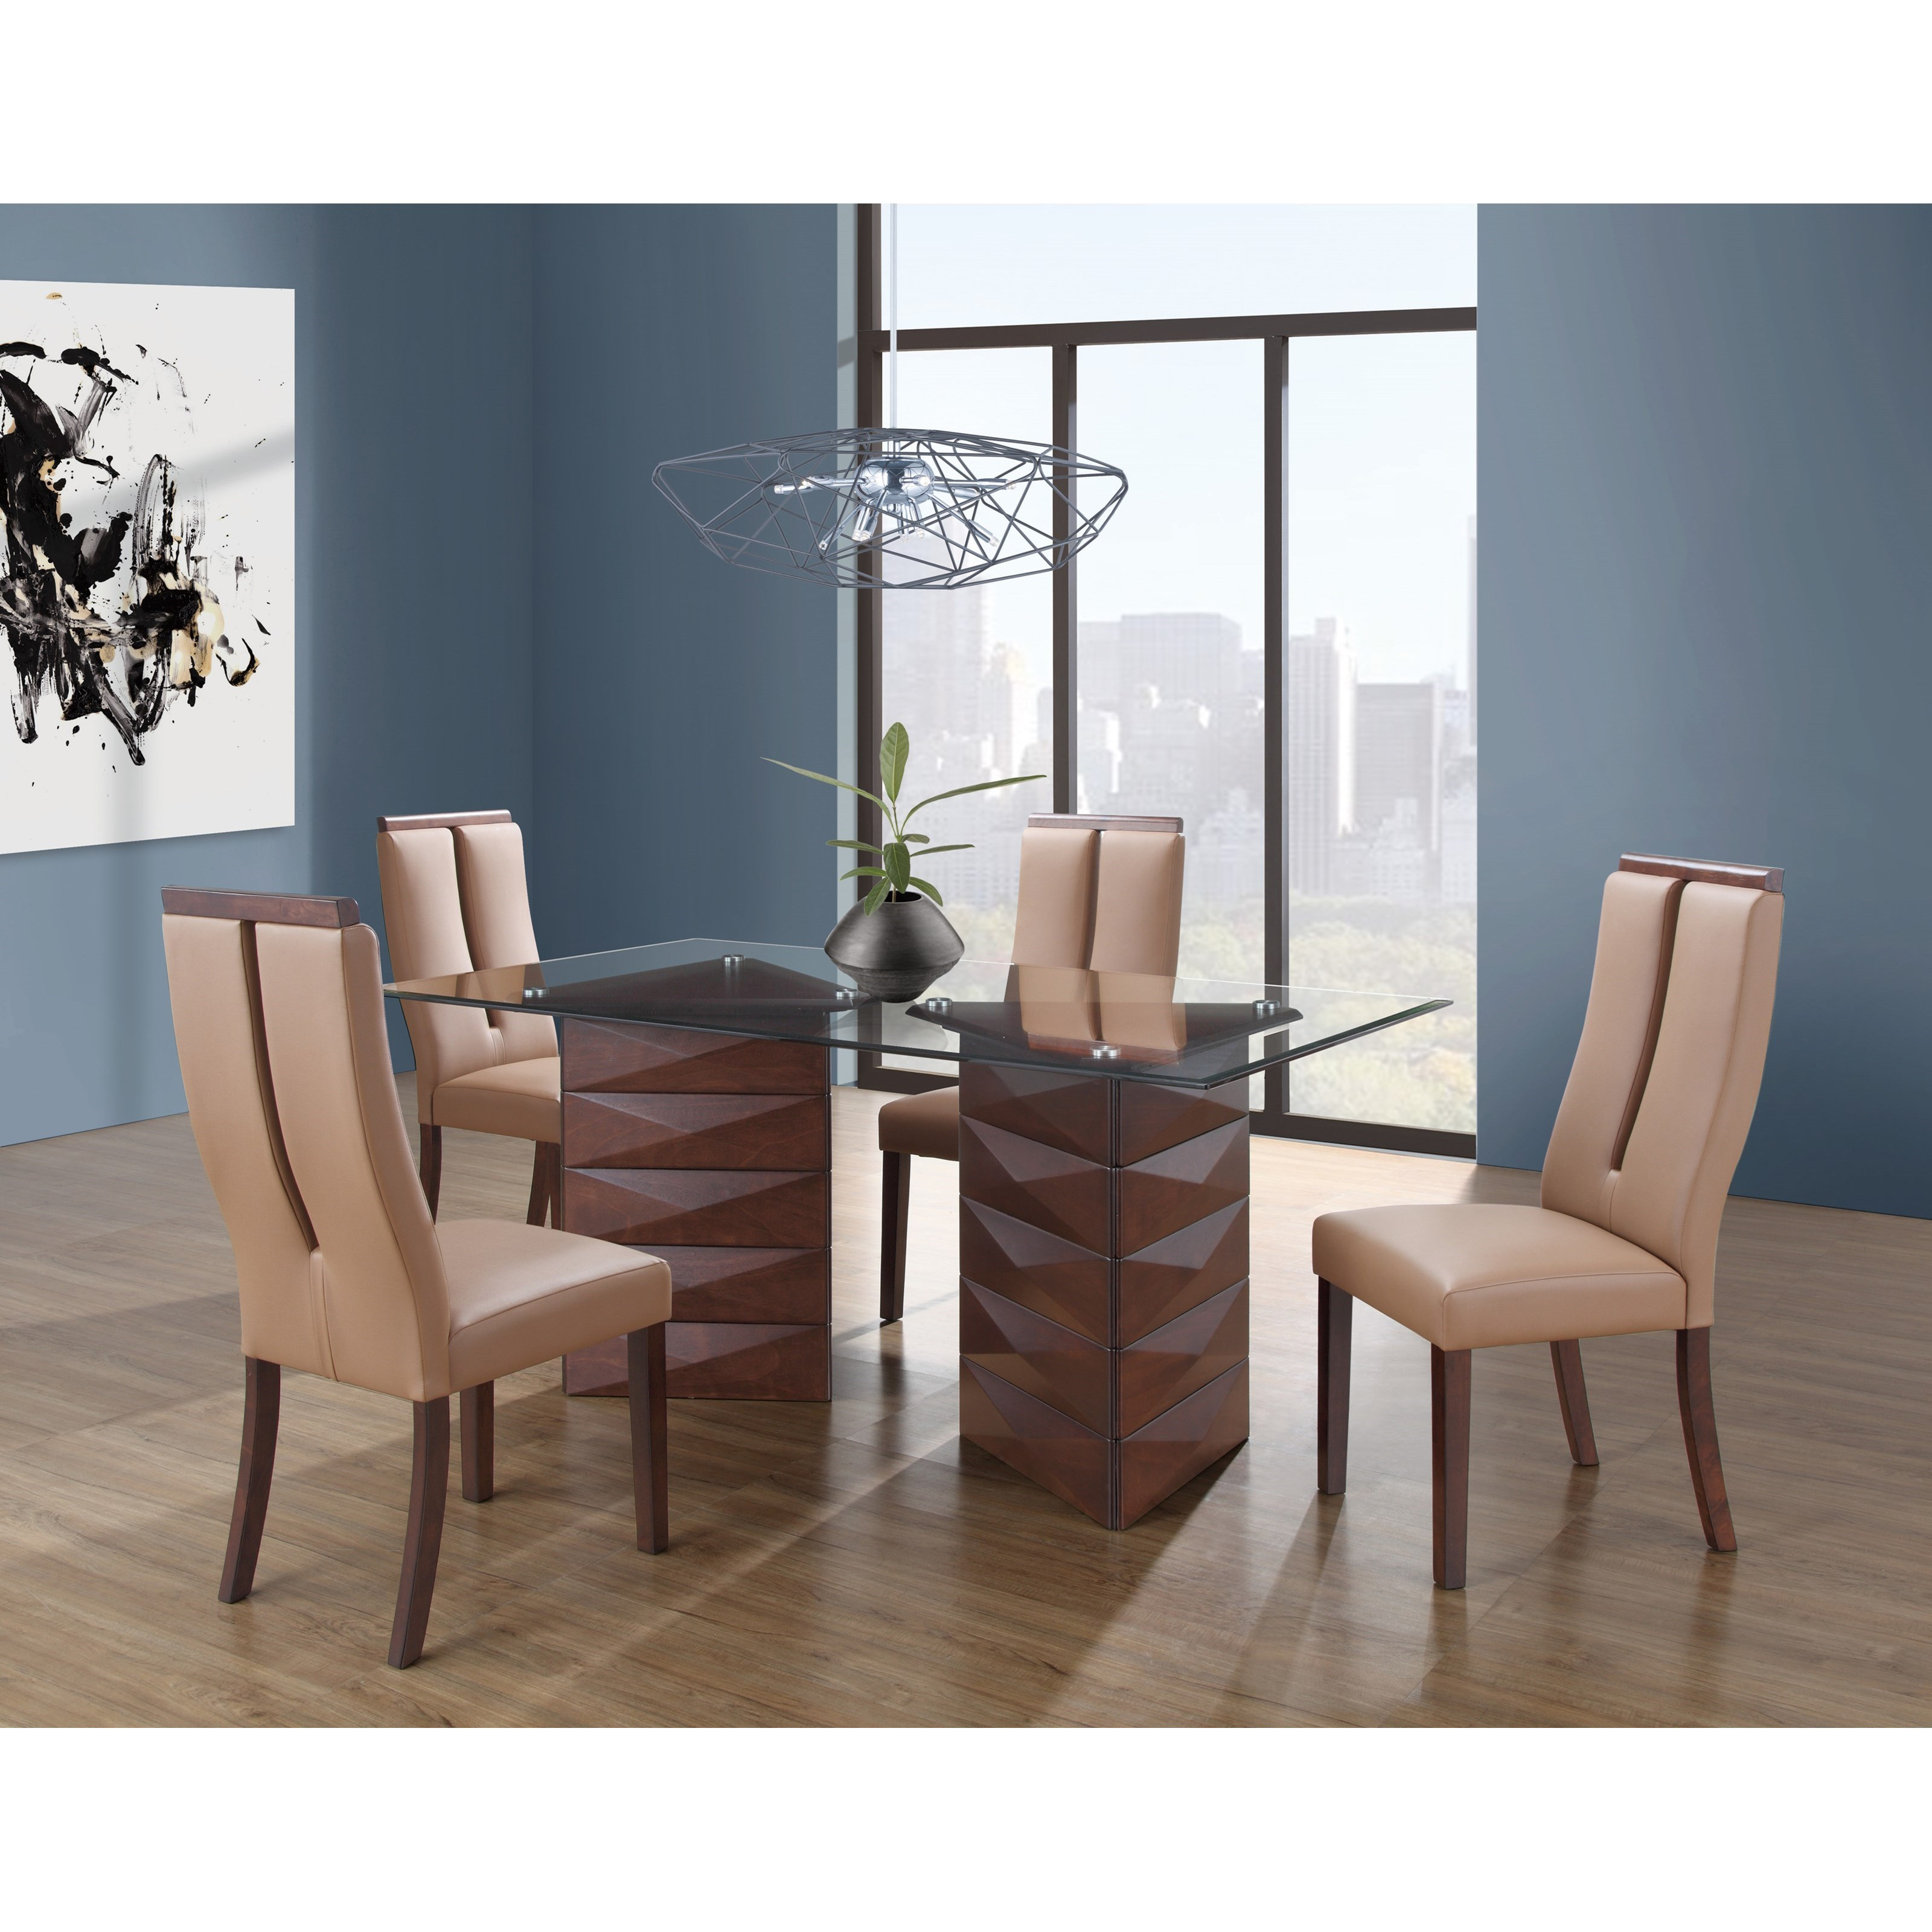 D3972 5 Piece Table and Chair Set by Global Furniture at Nassau Furniture and Mattress